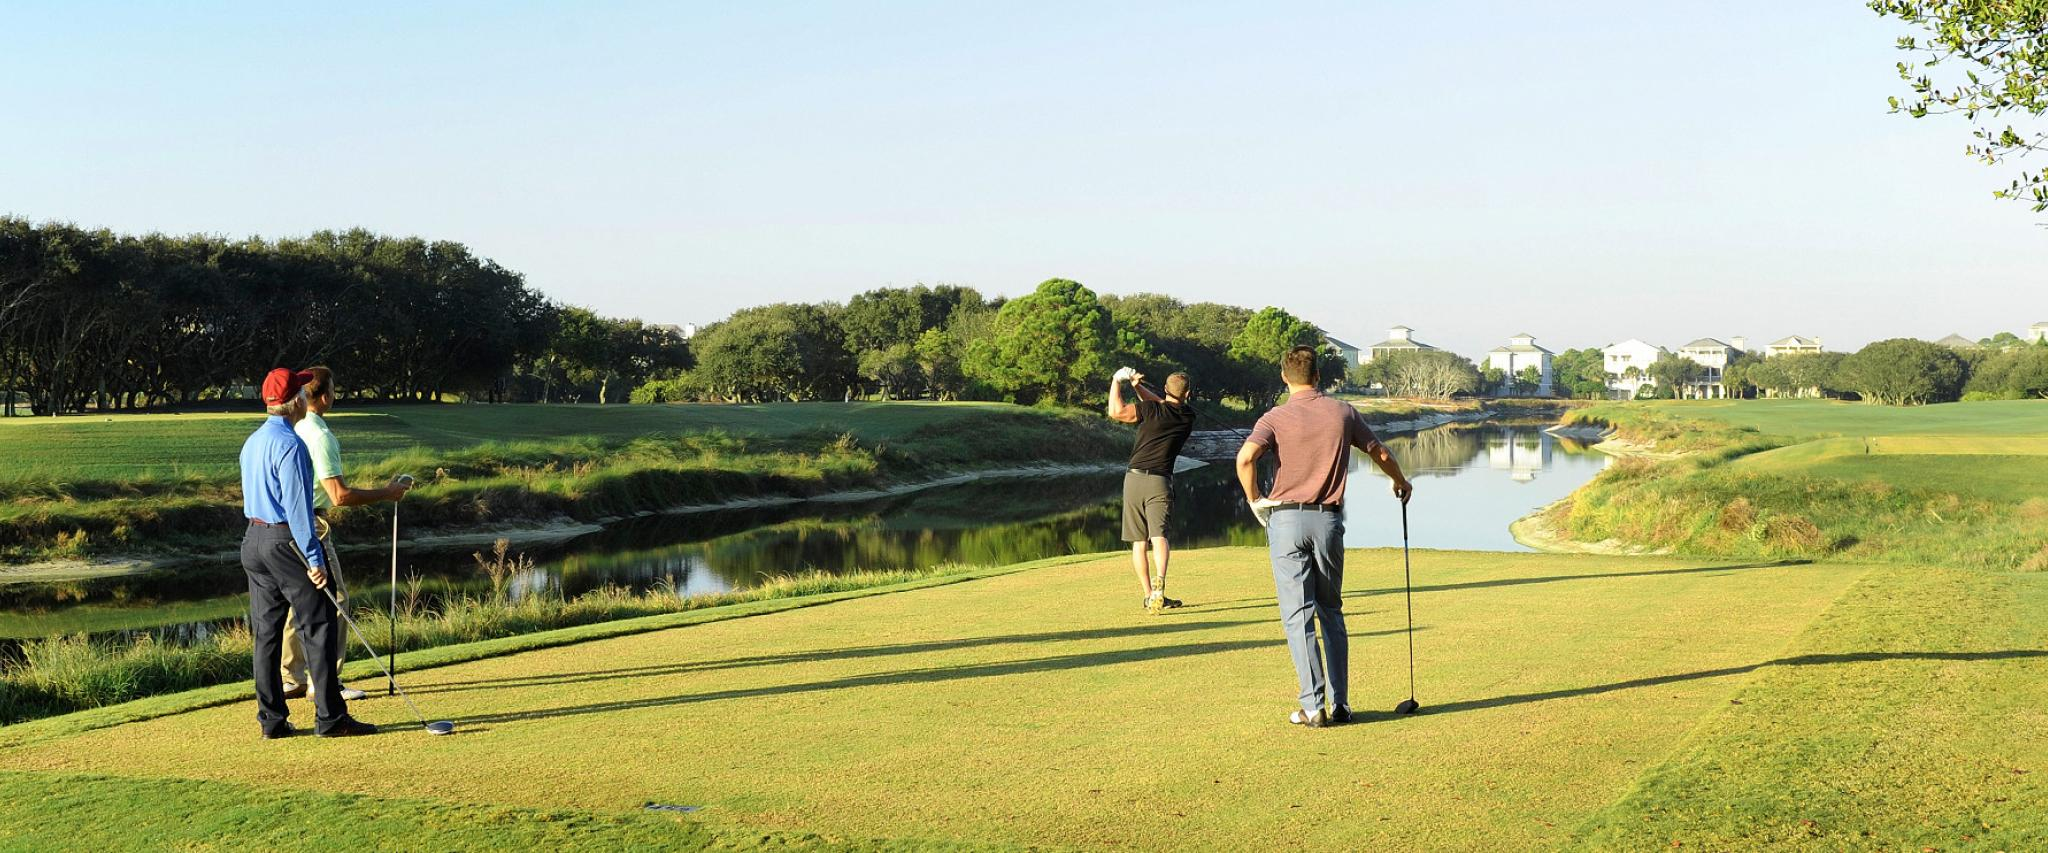 Golfers play on Alabama Gulf Coast golf courses